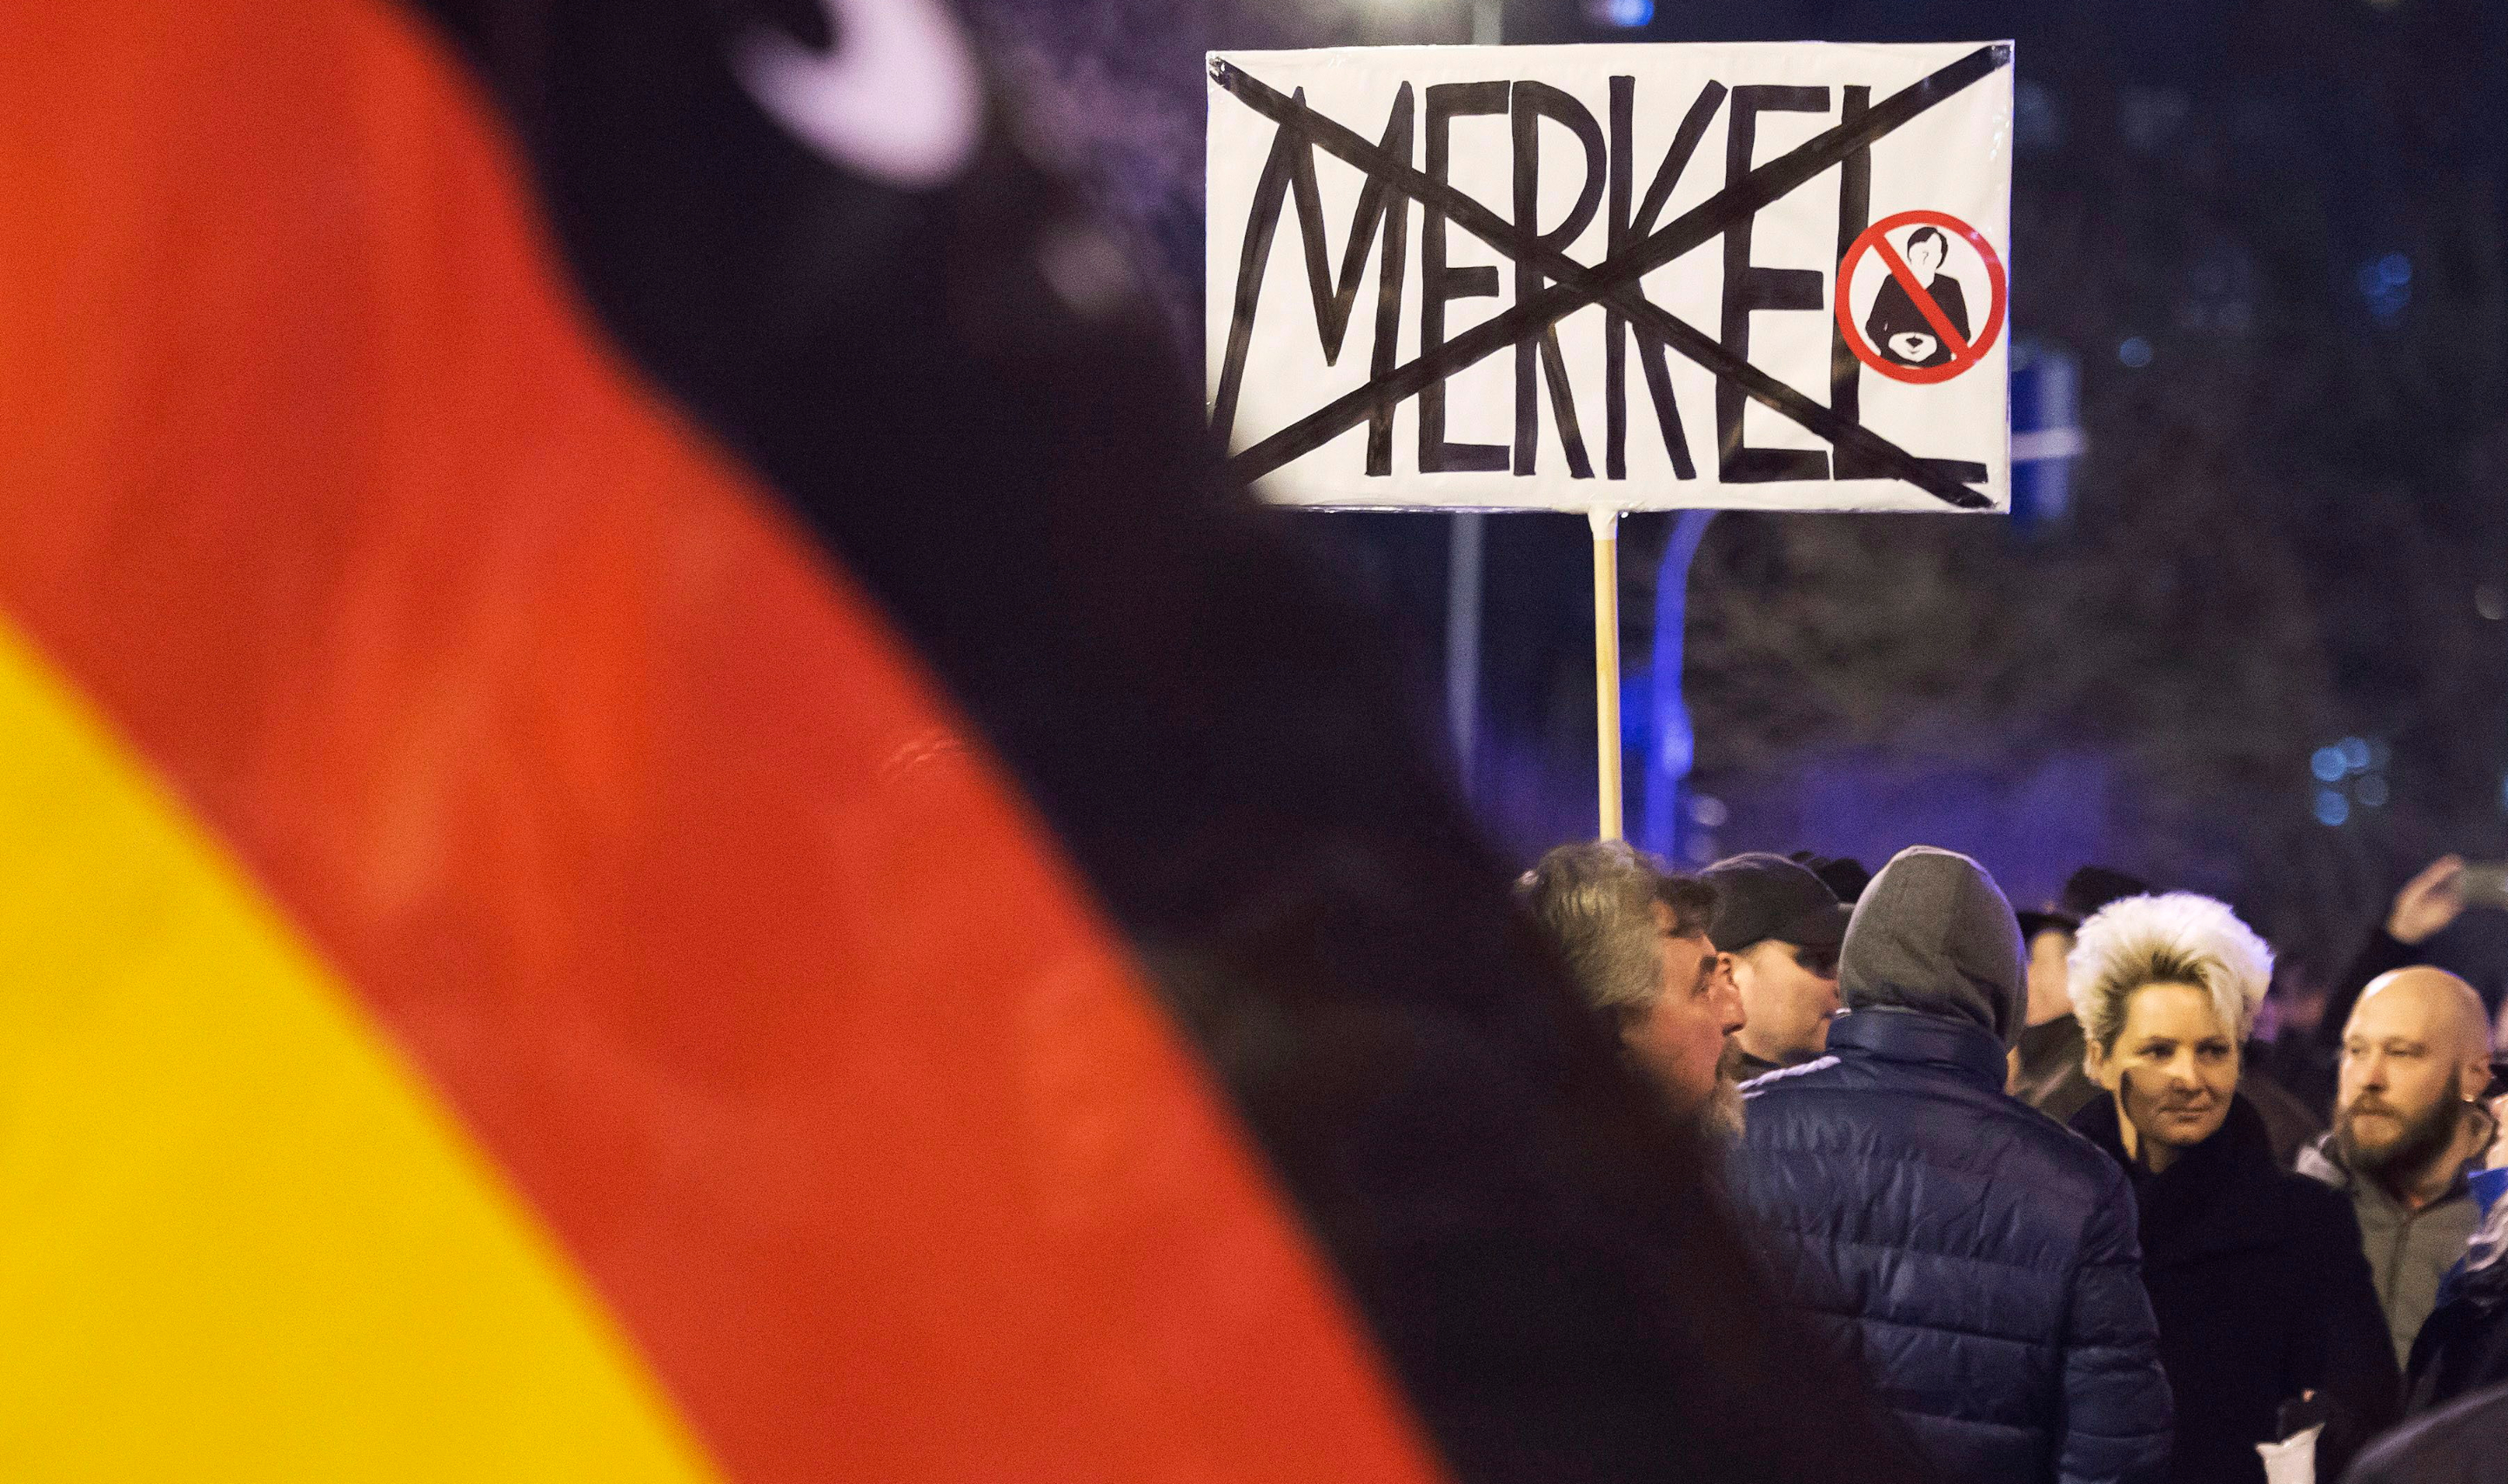 In this February 2016 photo, people wave German flags in Erfurt, central Germany, during a demonstration initiated by the Alternative for Germany (AfD) party. File photo by Jens Meyer/AP